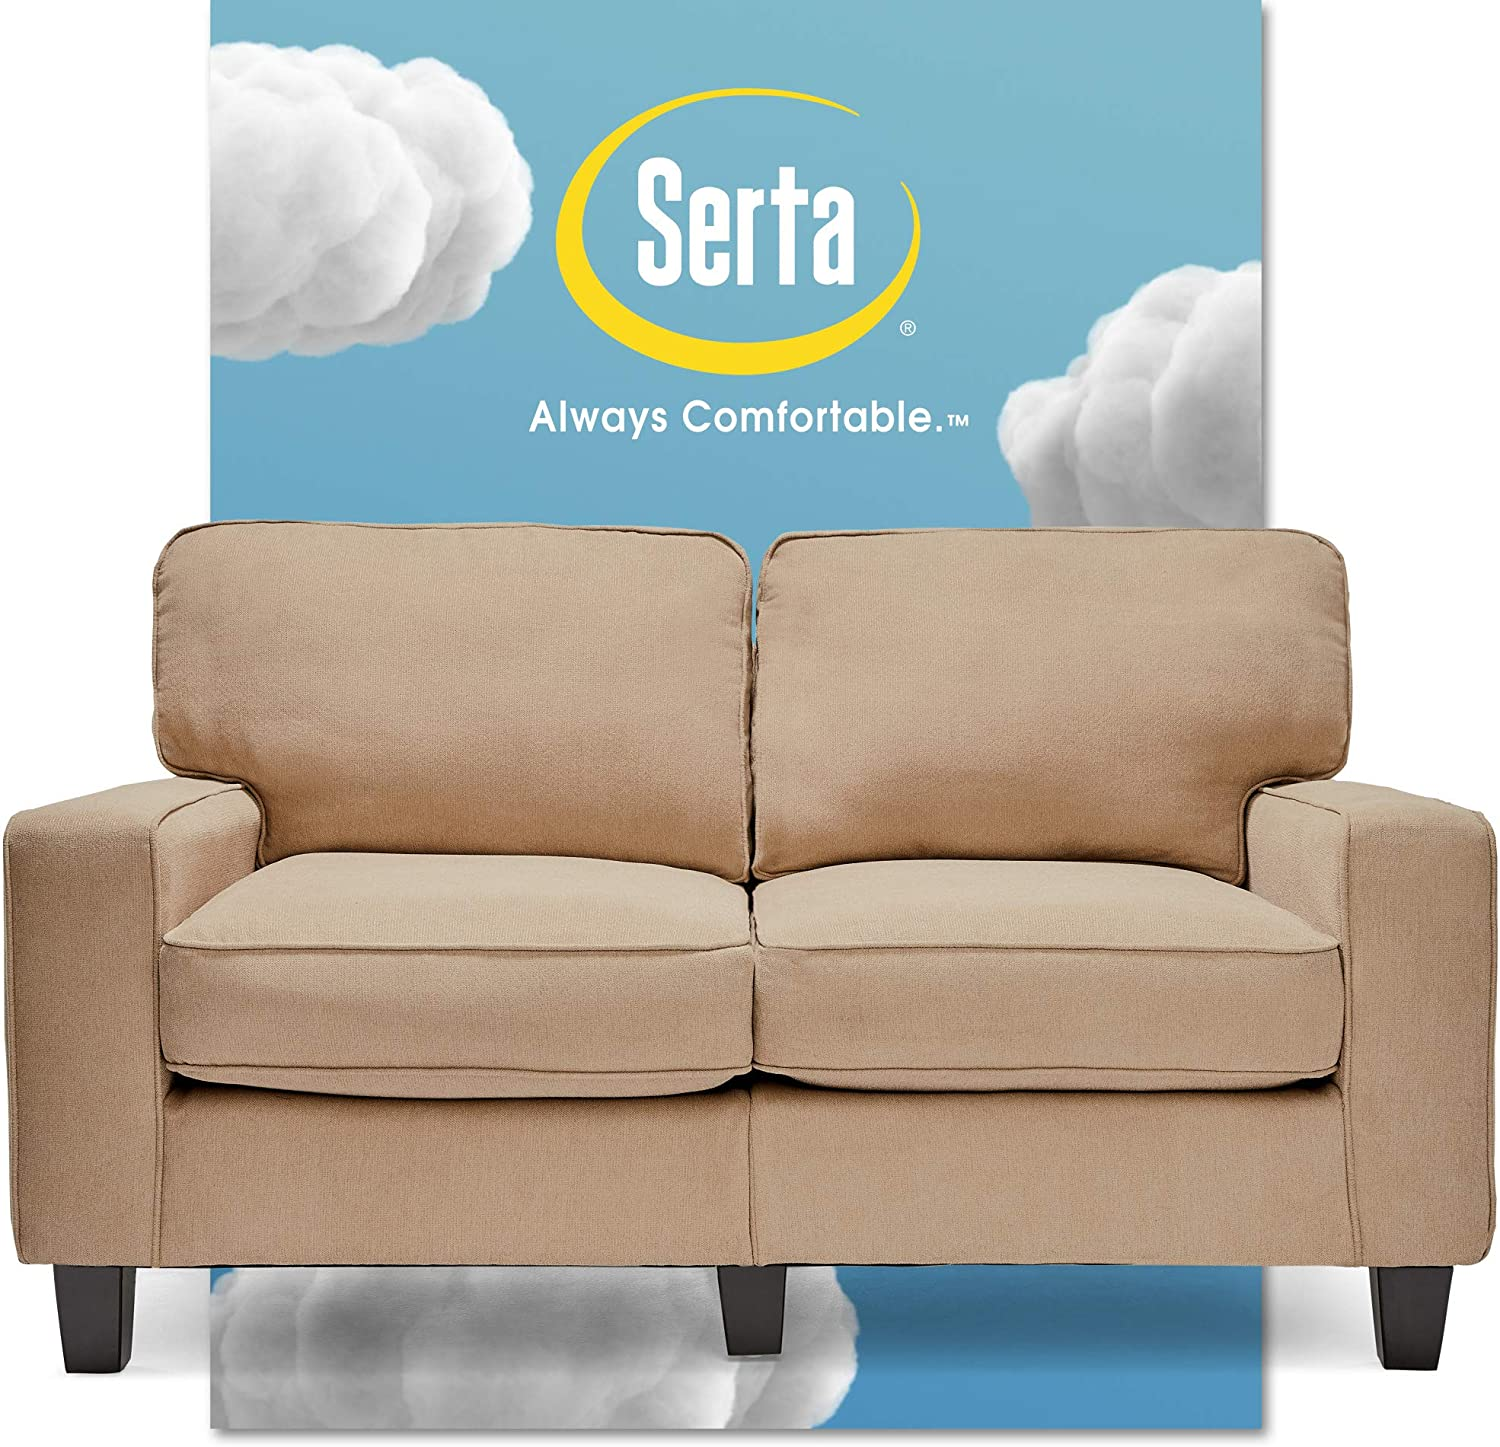 """Serta Palisades Upholstered Sofas for Living Room Modern Design Couch, Straight Arms, Soft Fabric Upholstery, Tool-Free Assembly, 61"""" Loveseat, Silica Sand"""